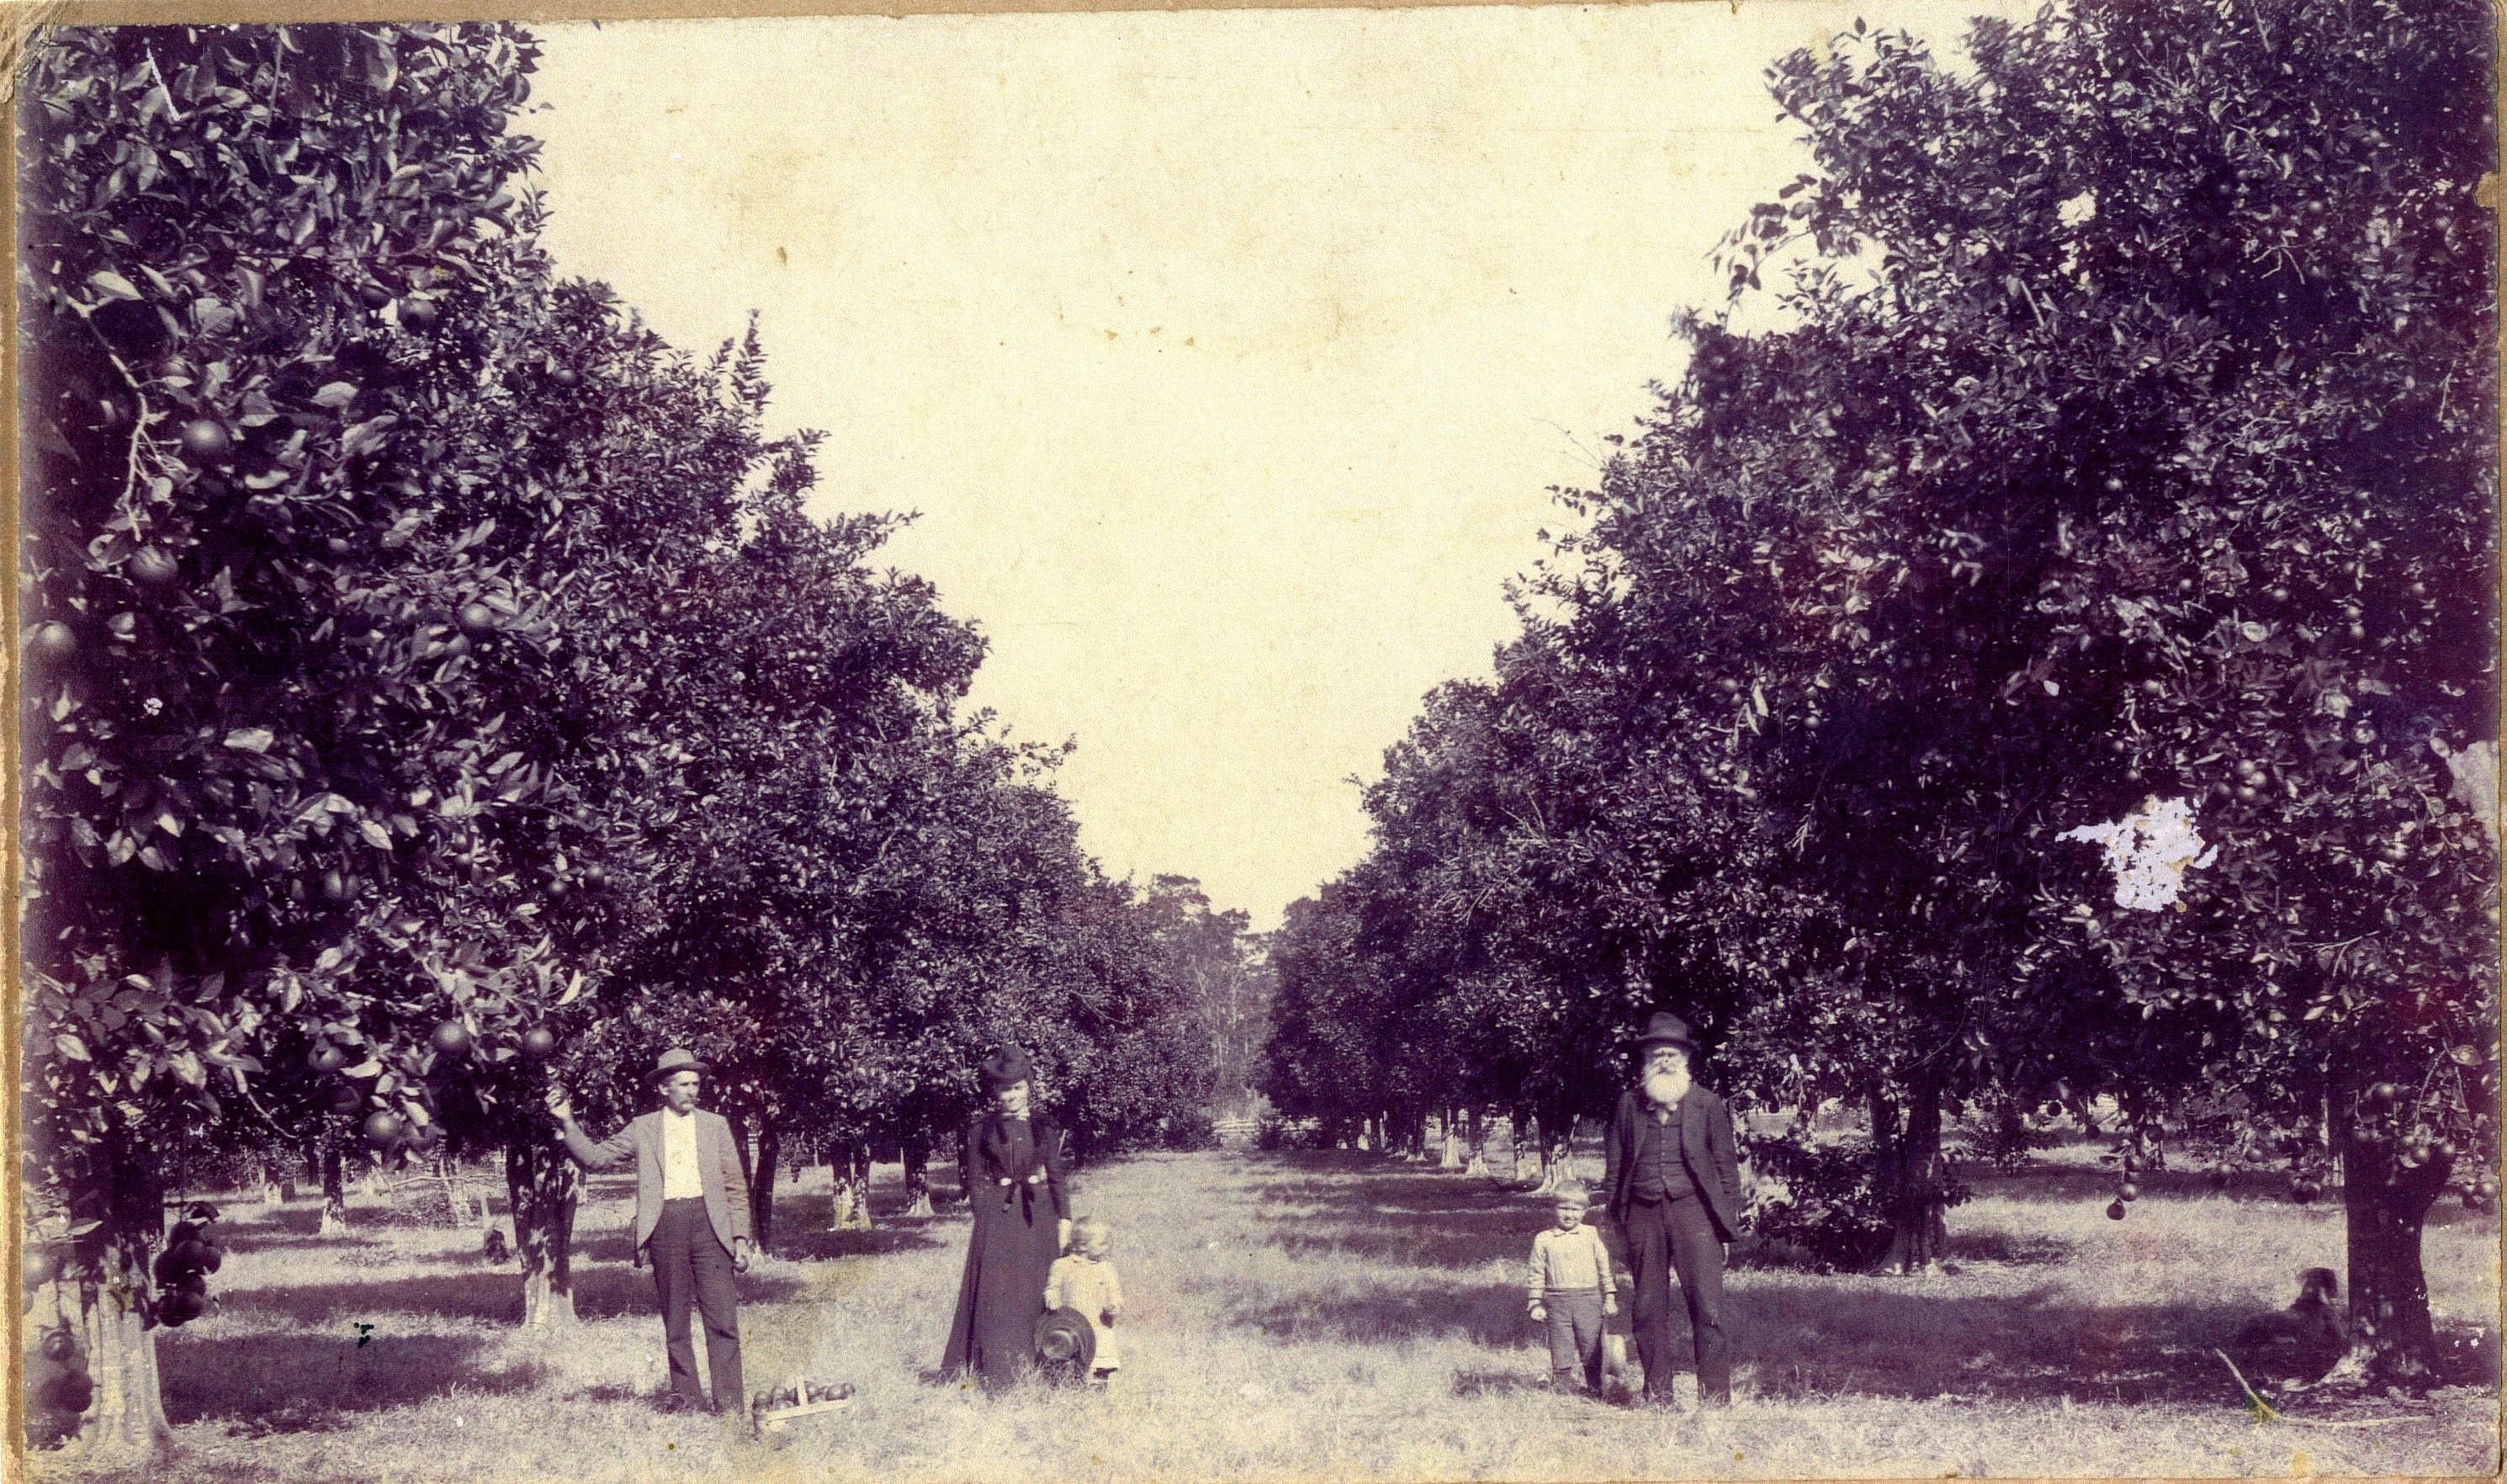 Daniel McMullen, his daughter Nannie McMullen Hardage, her husband, James Hardage, and two children in a citrus grove, Largo, Florida, circa 1905.